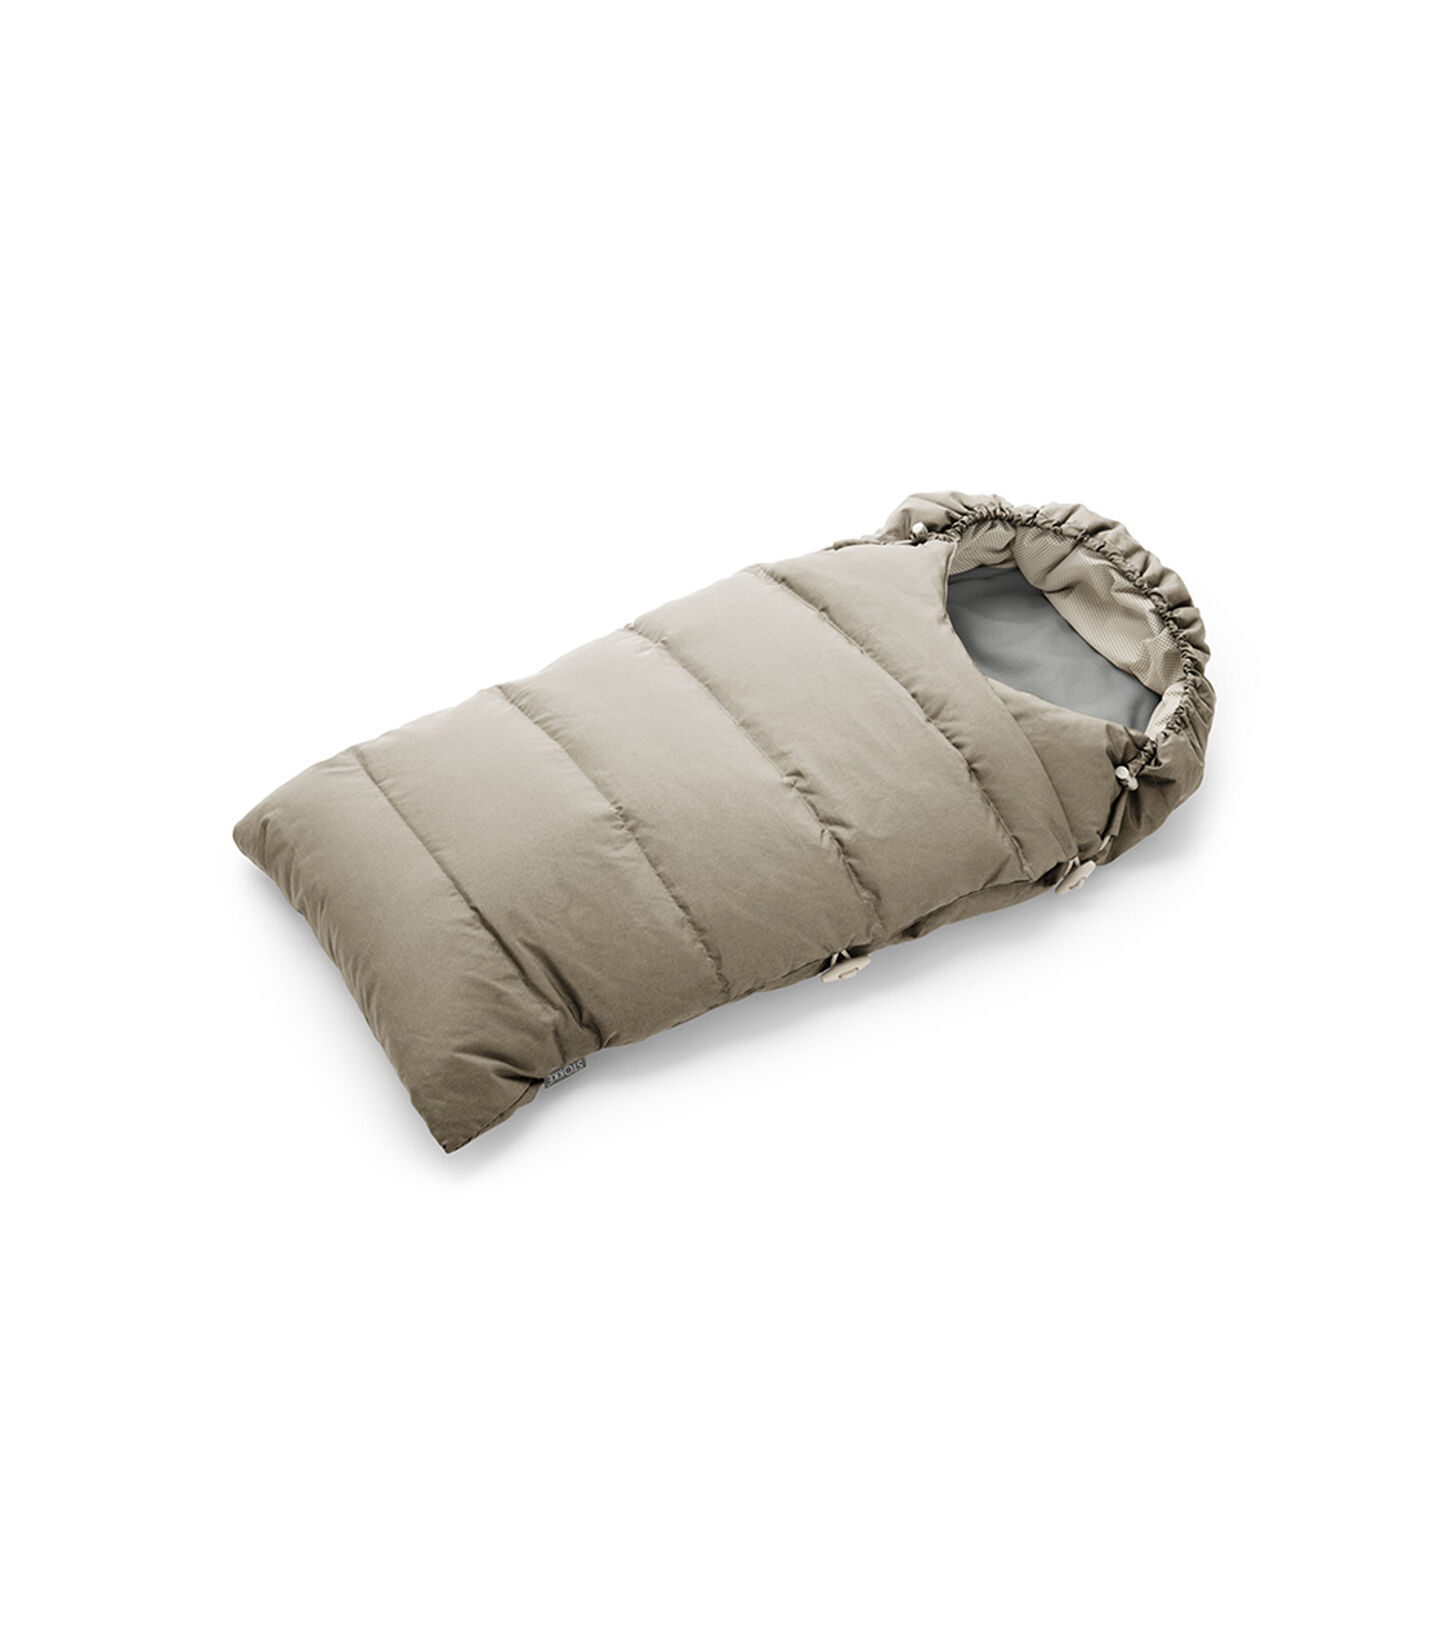 Stokke® Down Sleepingbag, Bronze Brown.